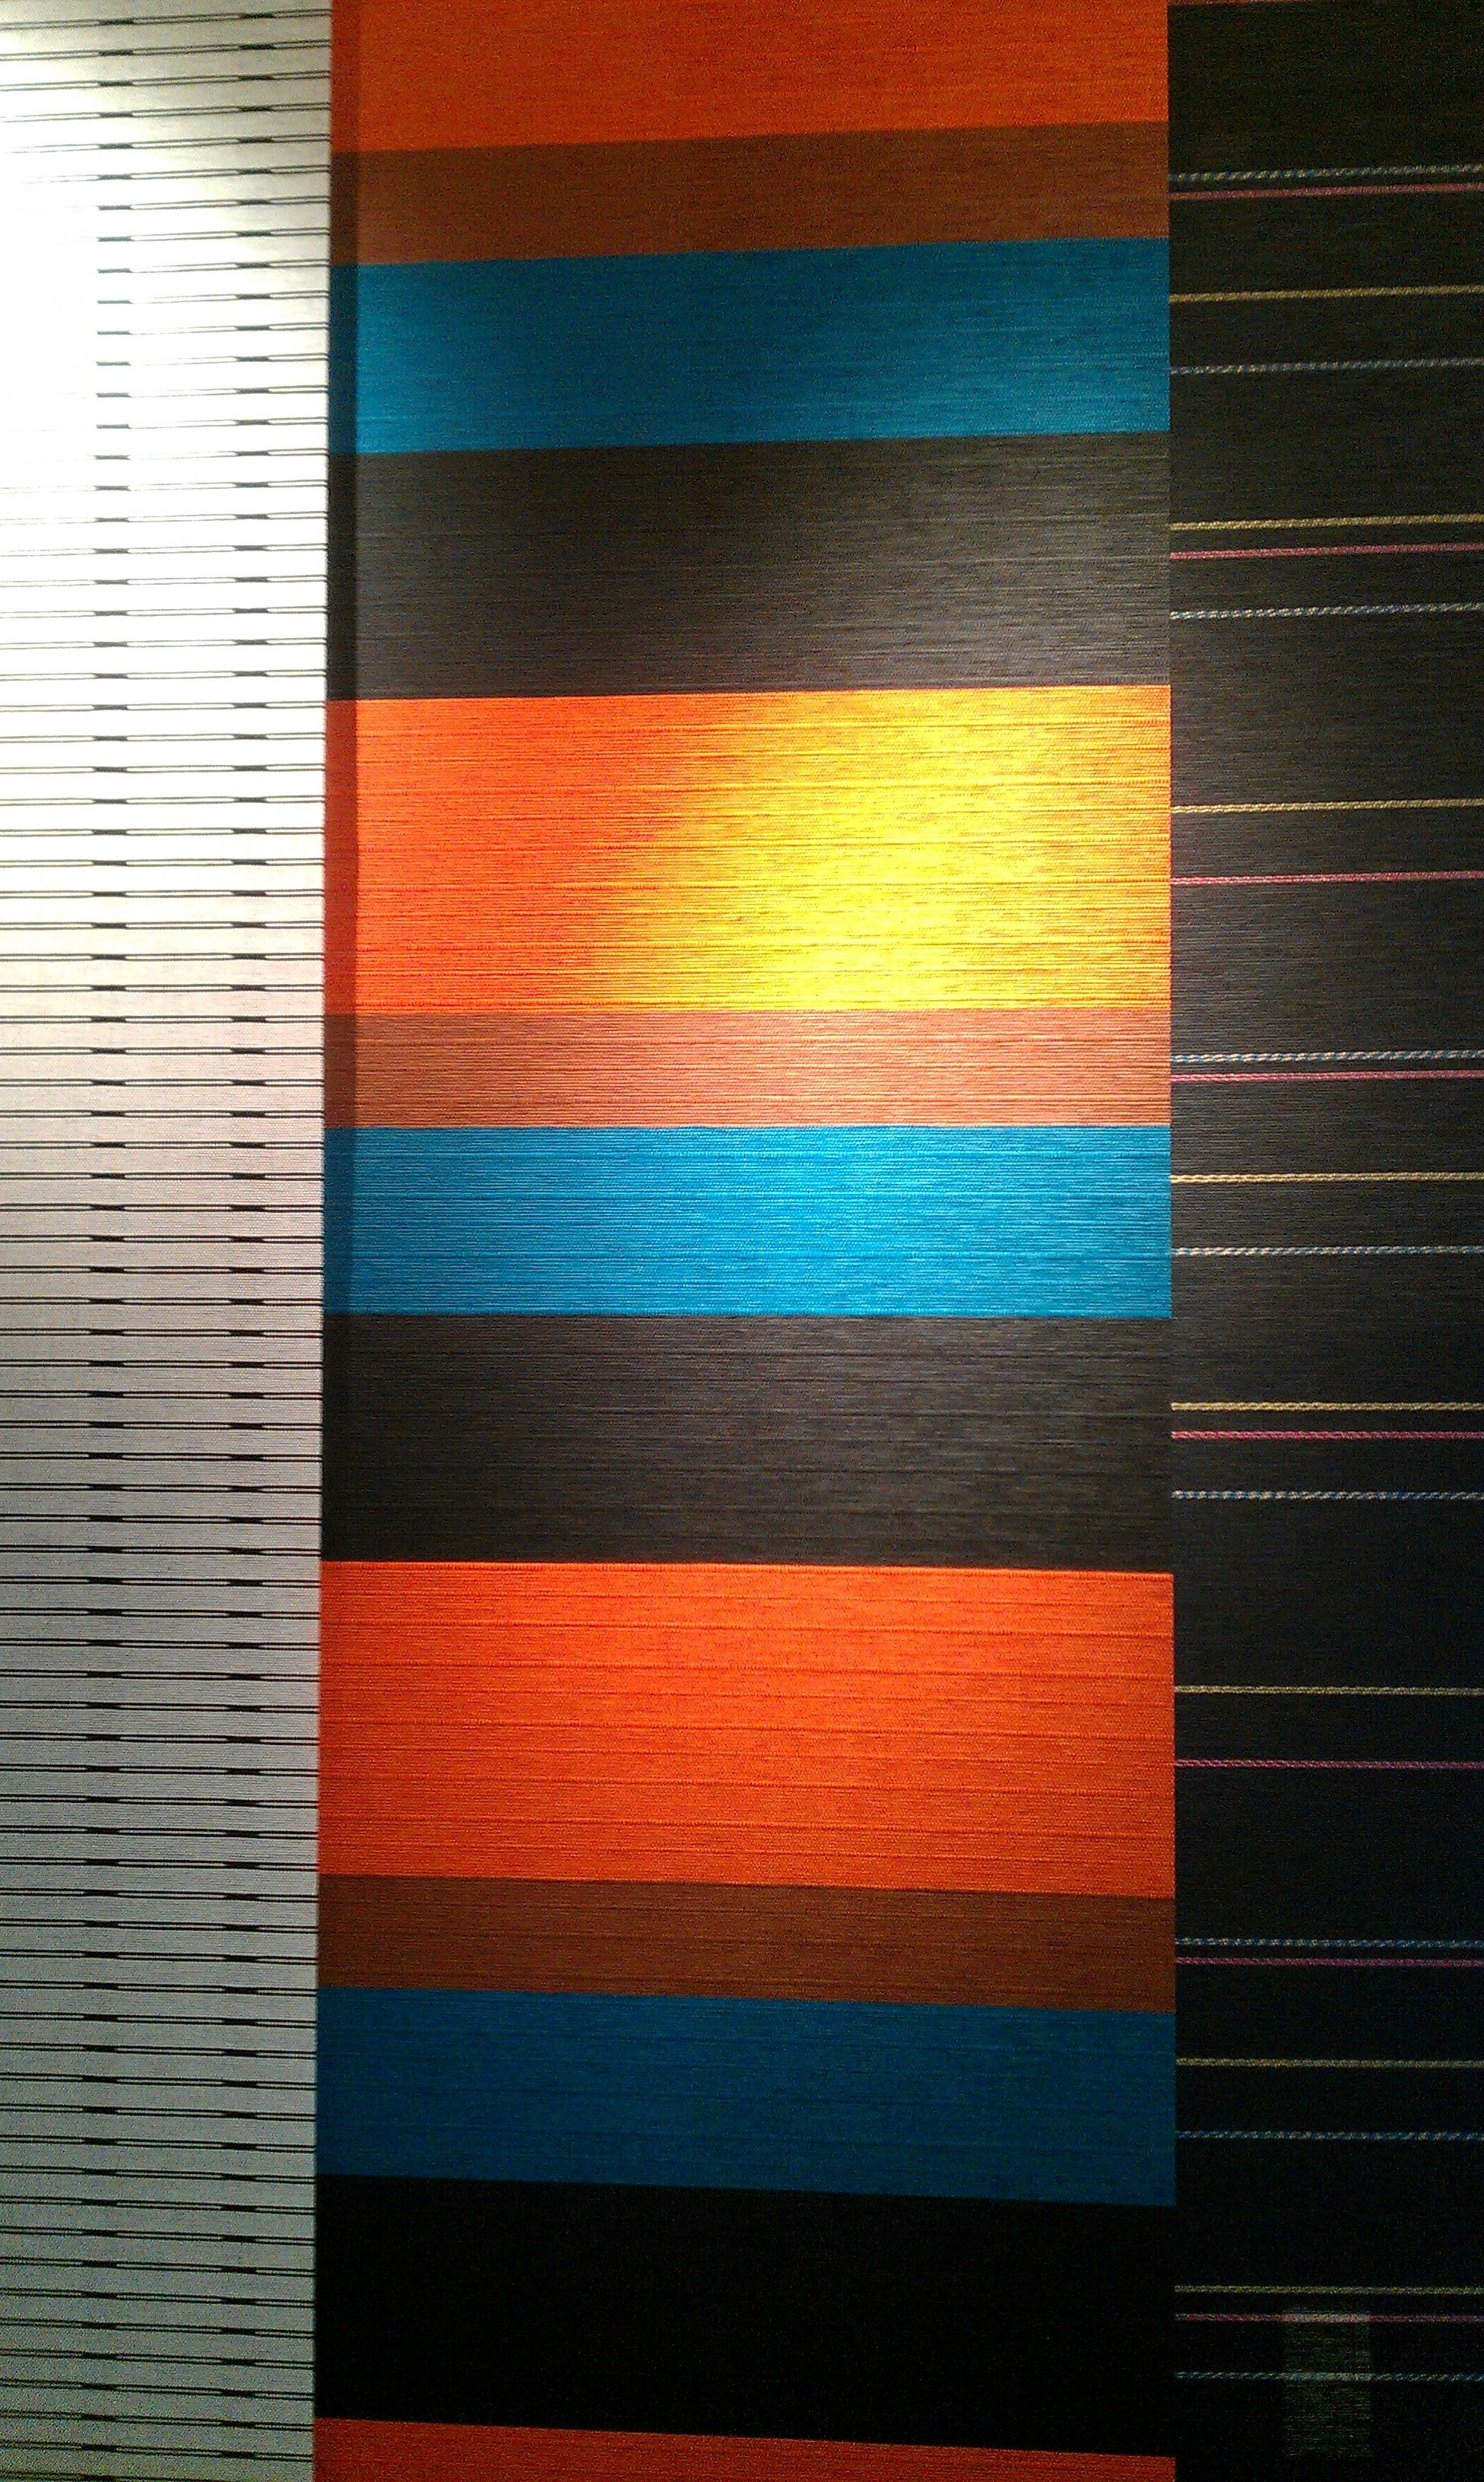 color scheme for living room: turquoise, burnt orange, navy blue